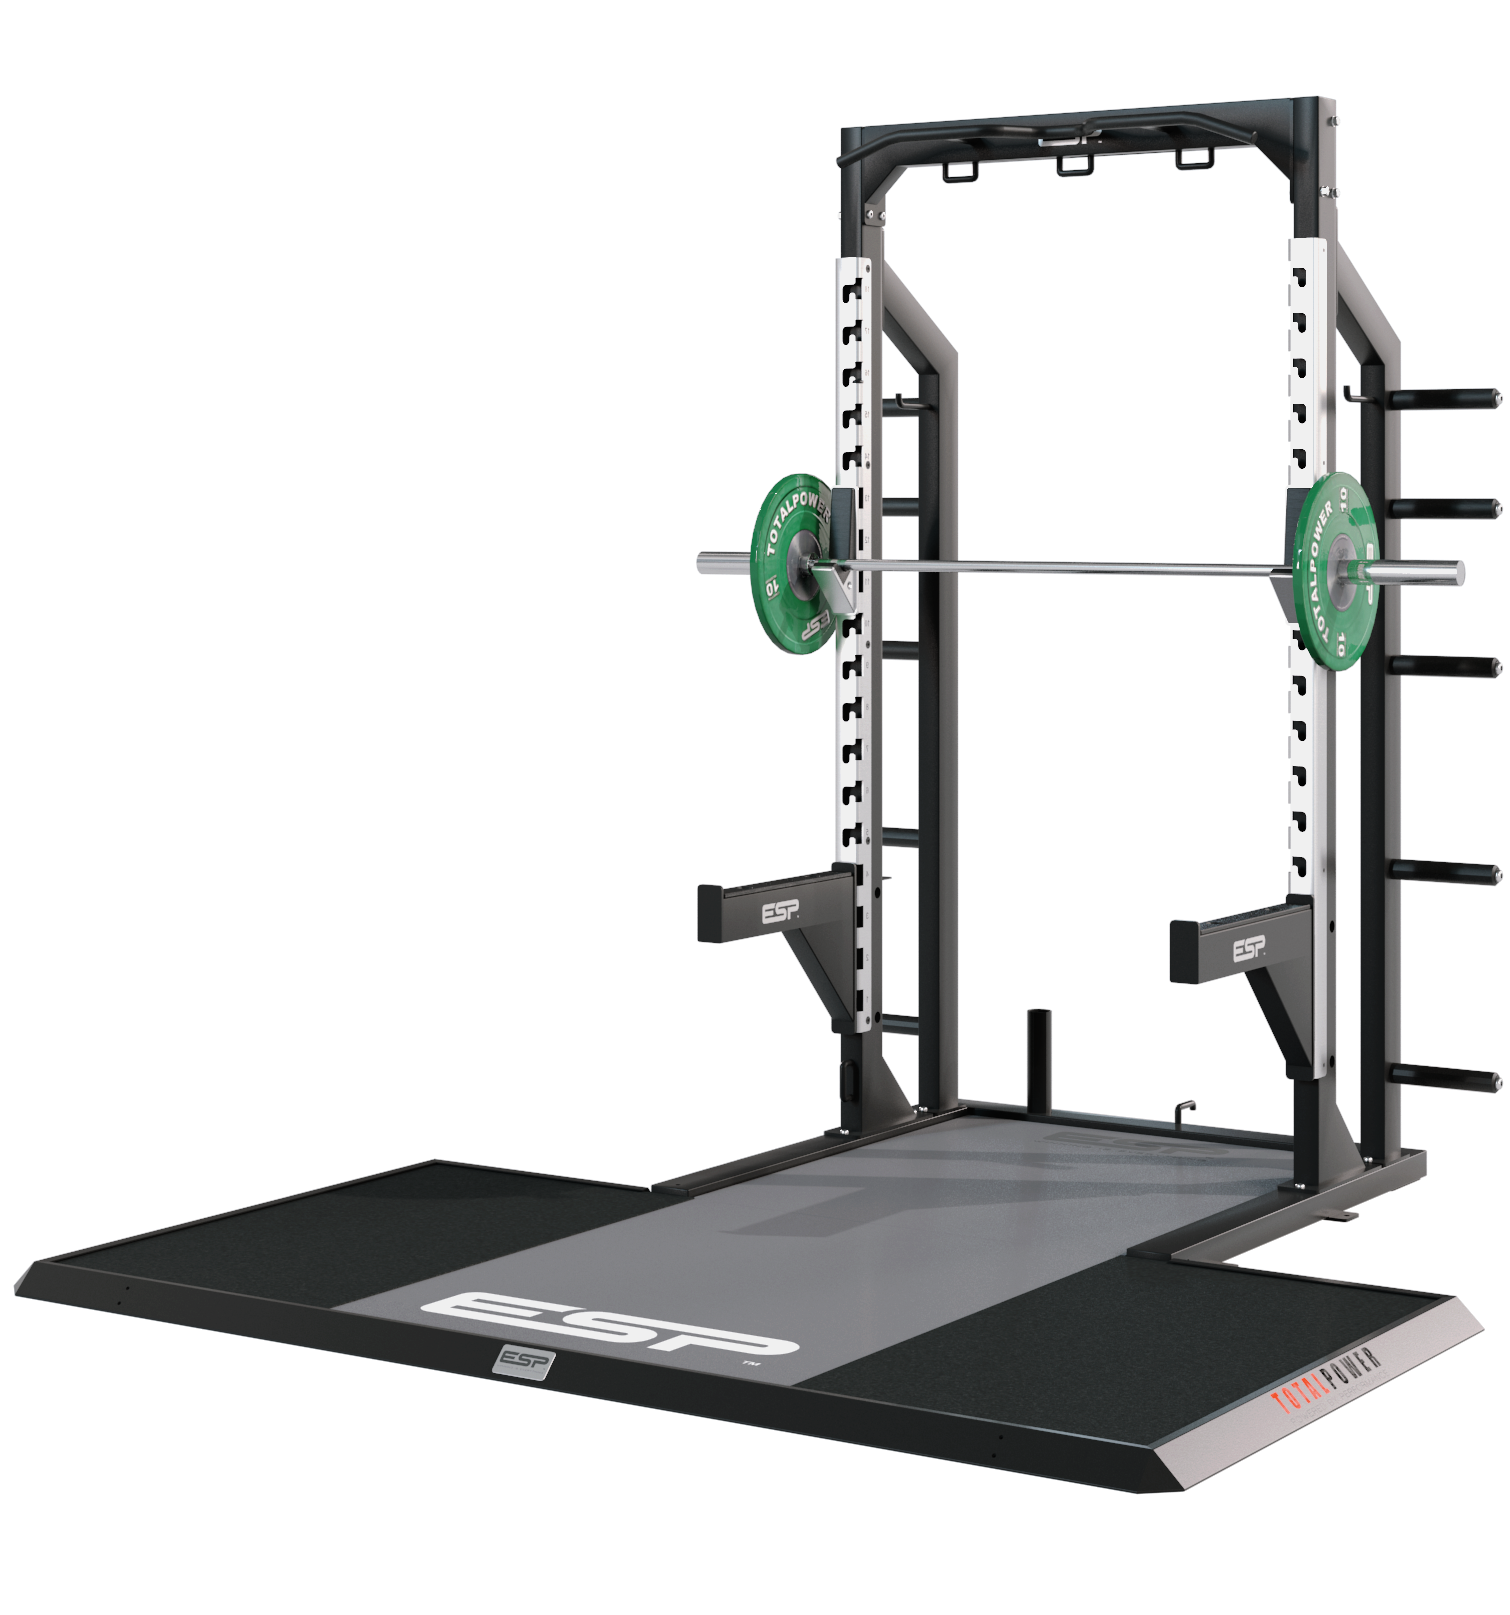 ESP Fitness pact Lifting Platform with ESP Half Rack The Half